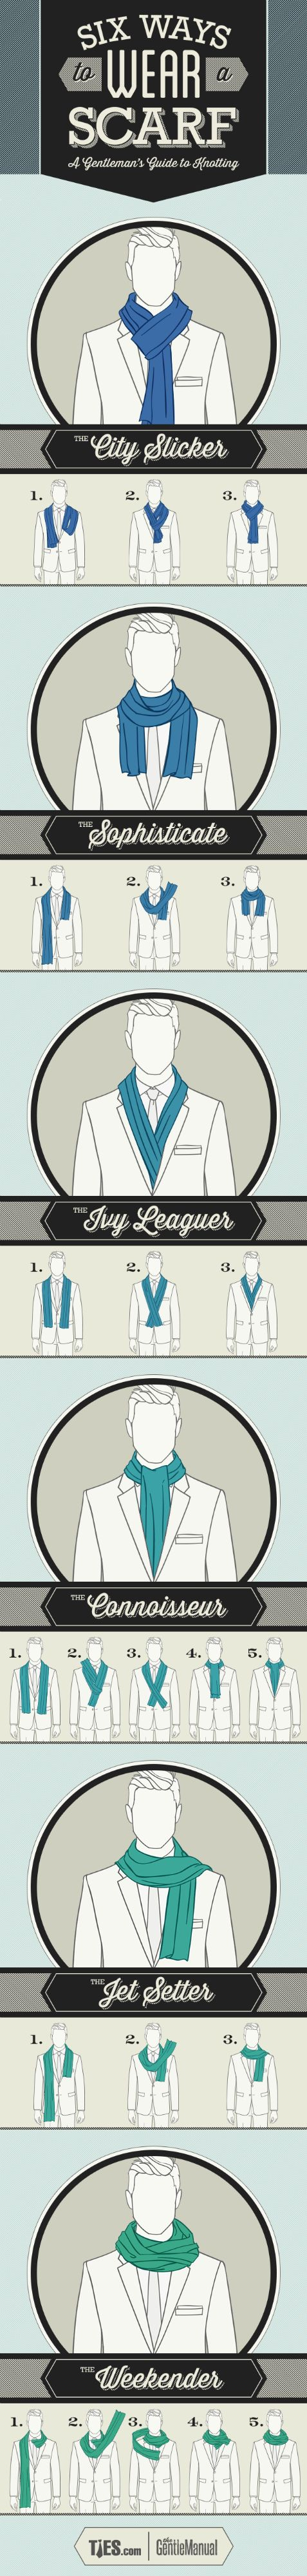 The Ultimate Gentleman Cheat Sheet Every Man Needs